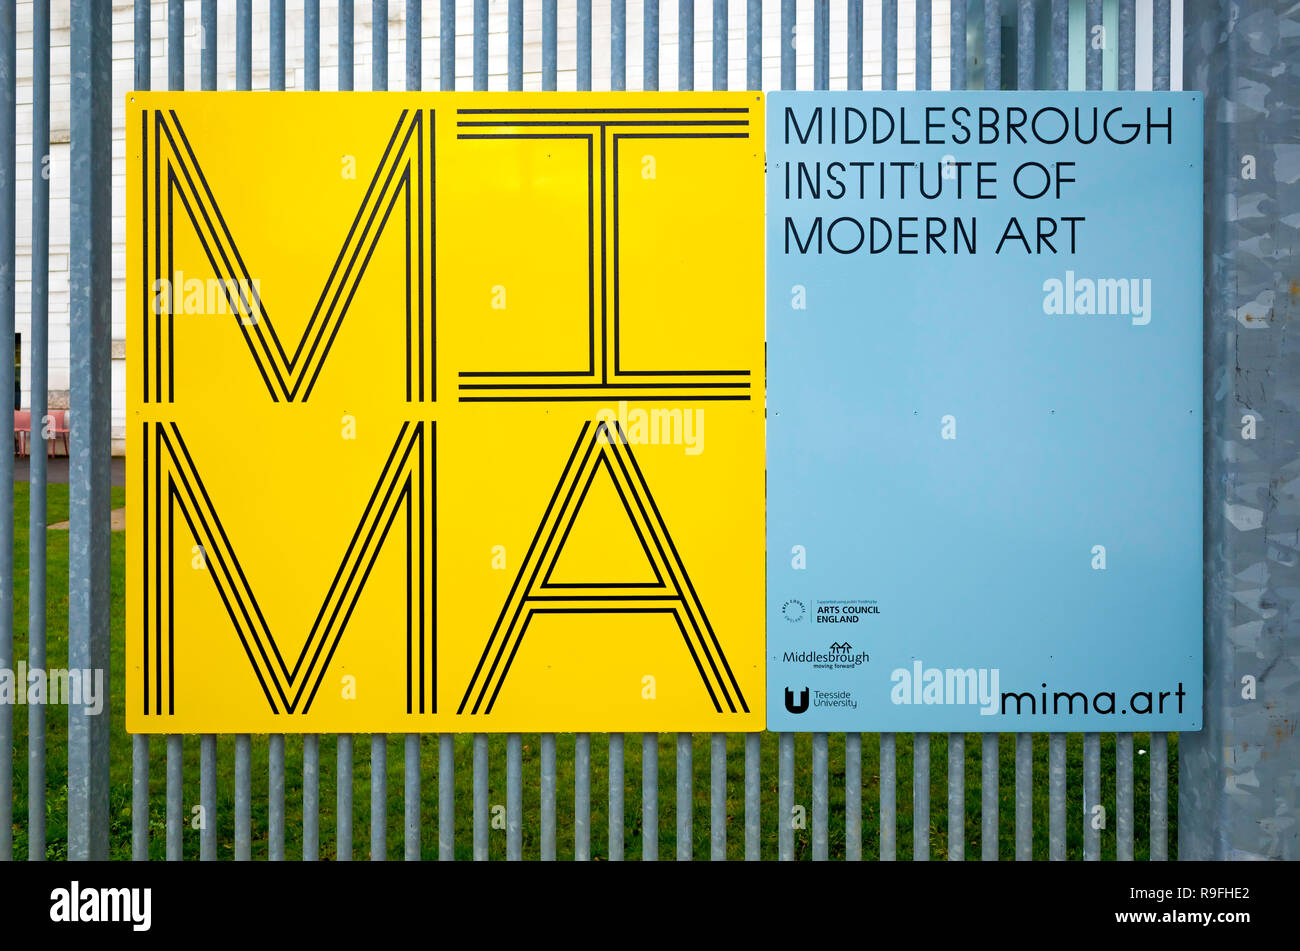 A sign for MIMA The Middlesbrough Institute of Modern Art mounted on a fence Stock Photo